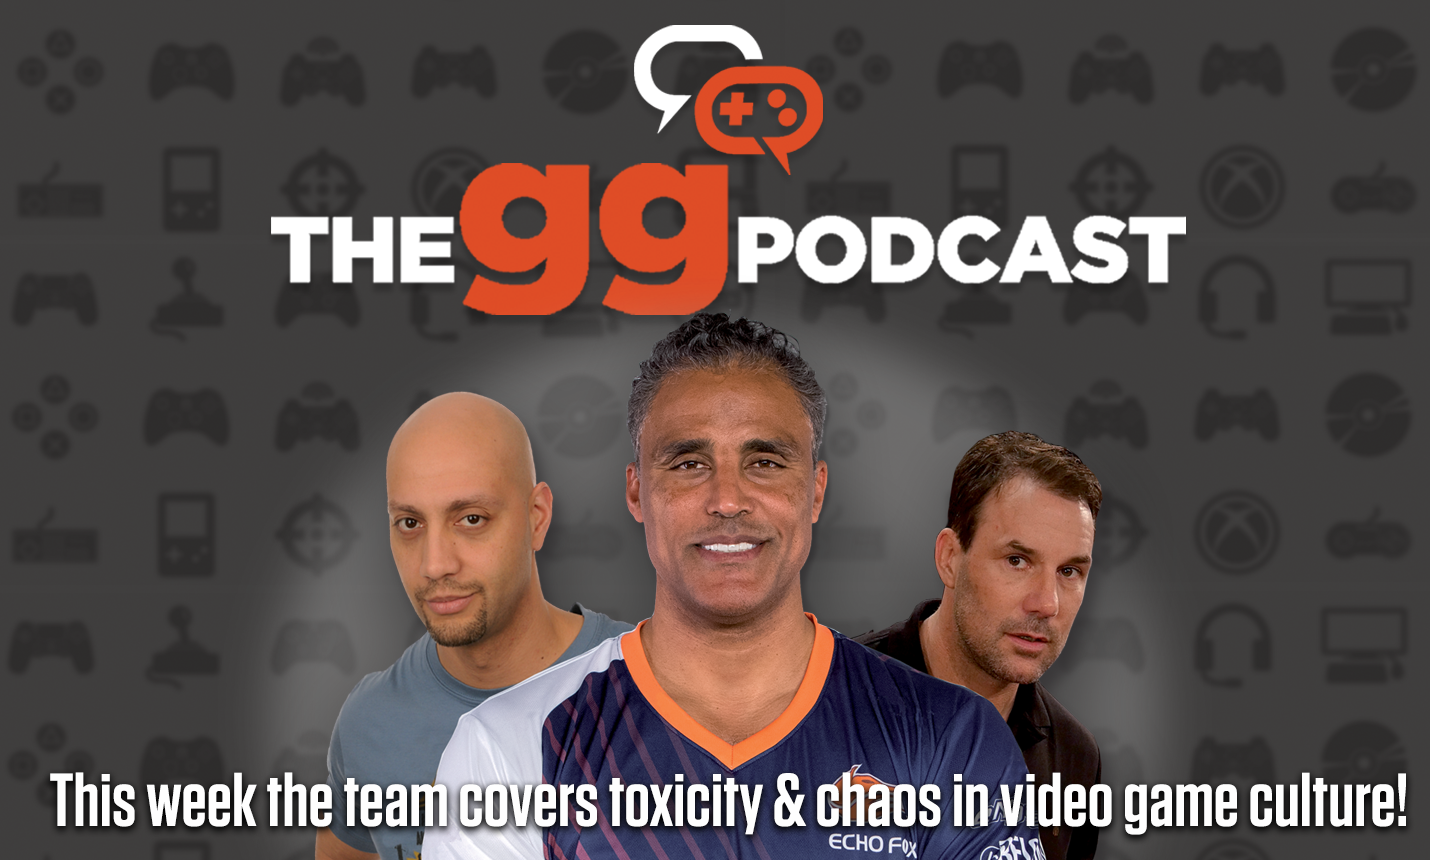 The GG Podcast